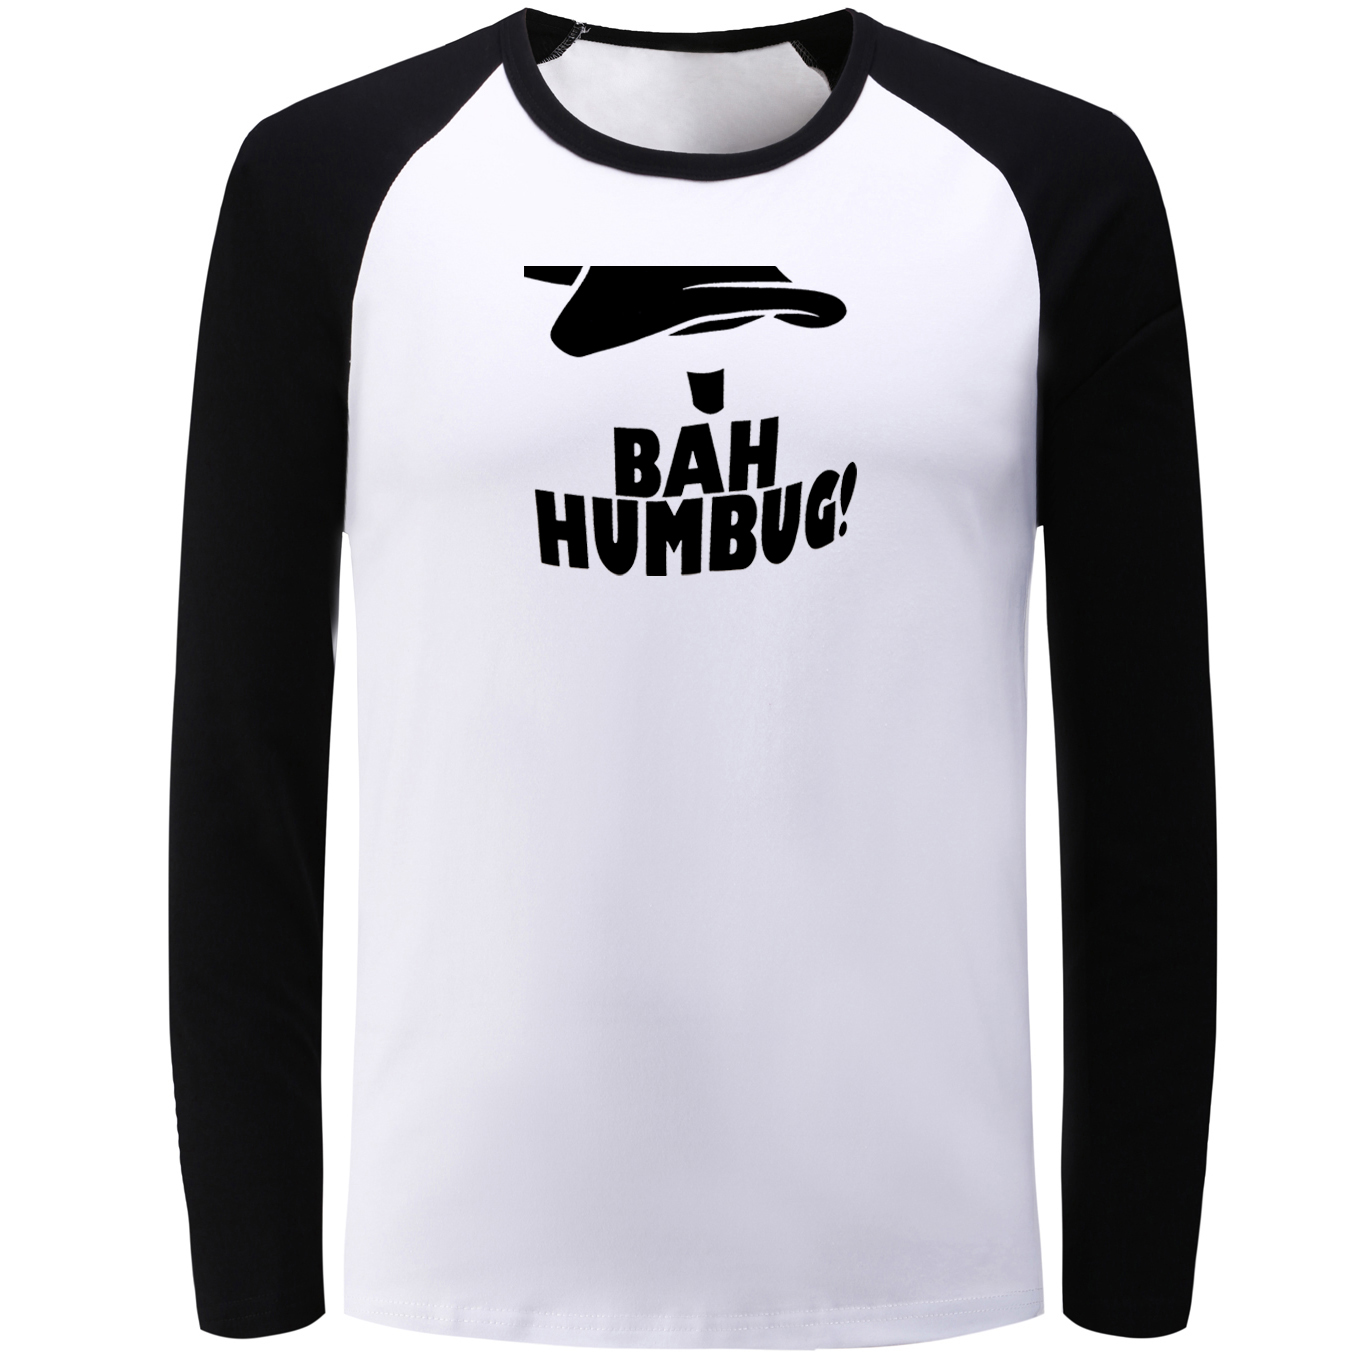 IDzn Blue Black Raglan Long Sleeve T-shirt BAH HUMBUG Graphic Fashion T Shirt Men Women  ...